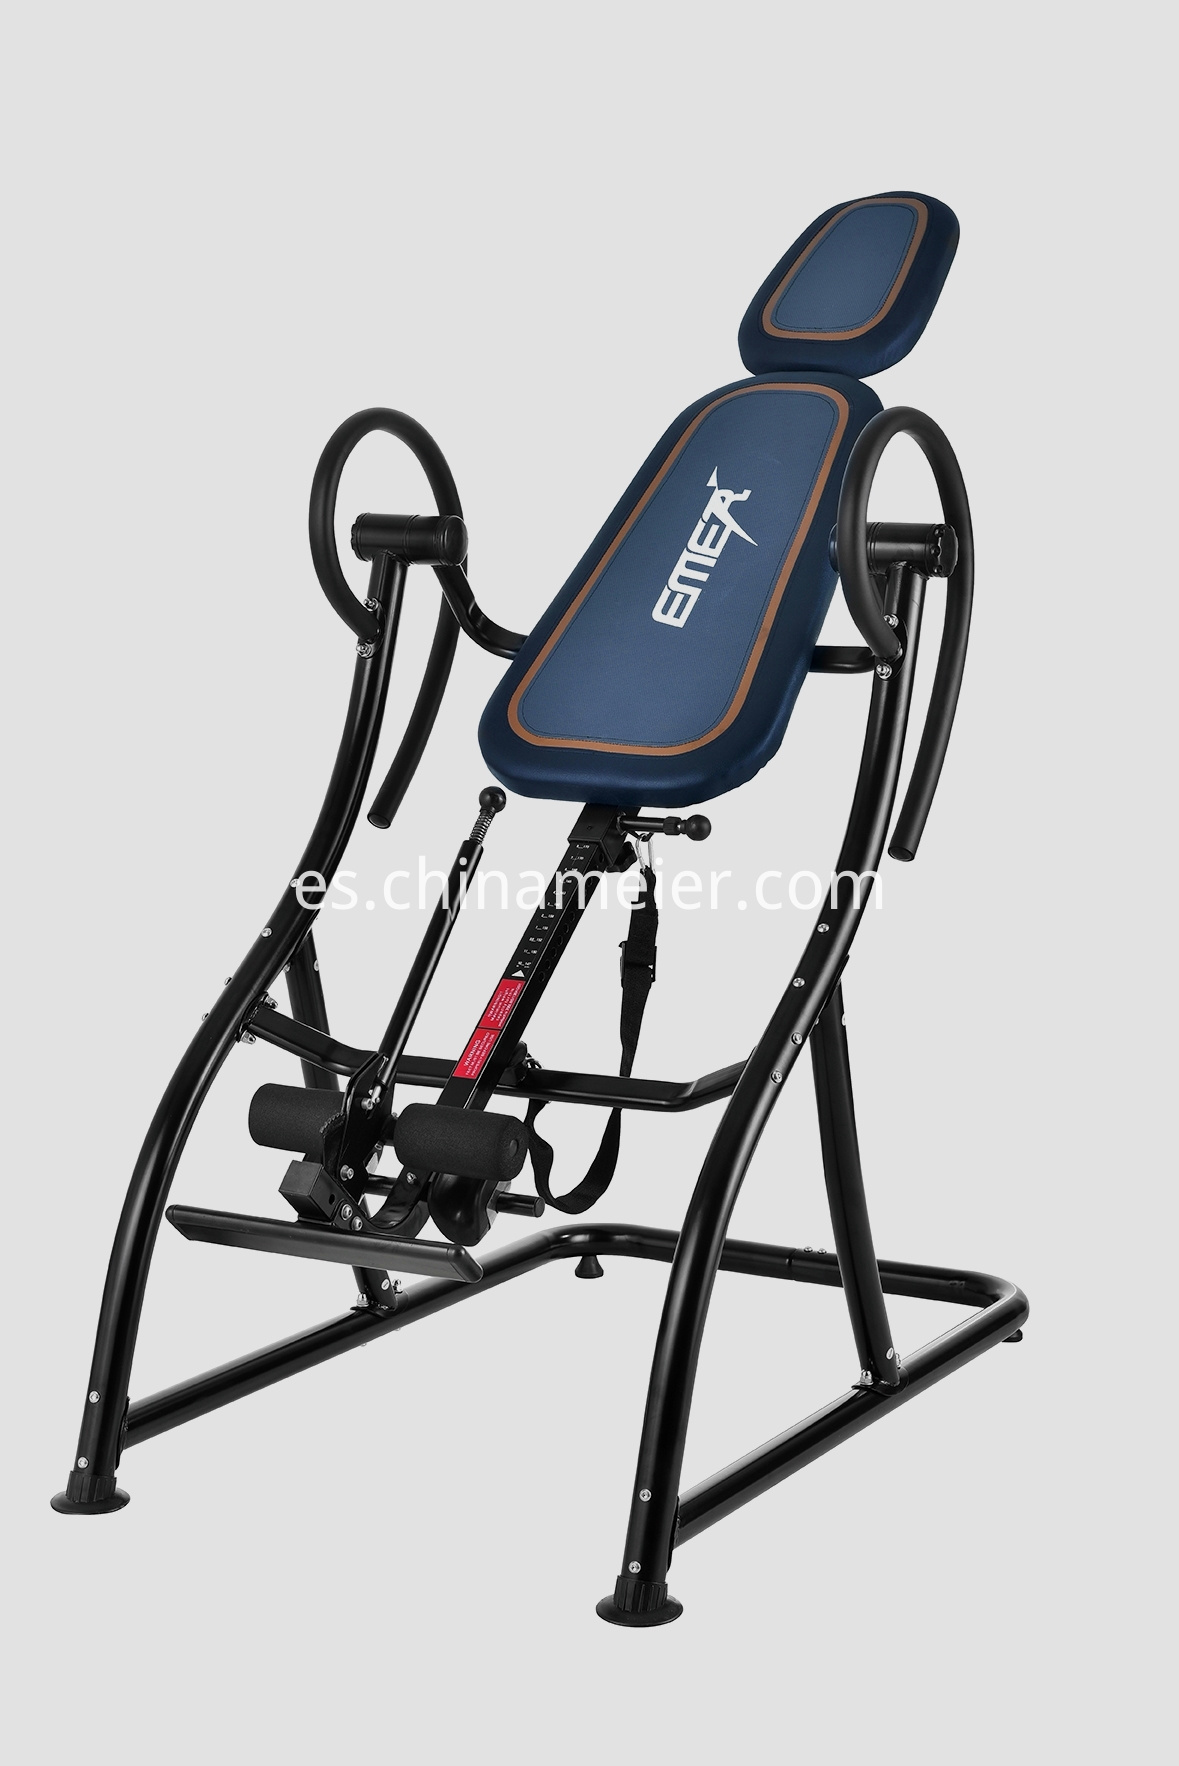 Table Exercise Machine Inversion Therapy